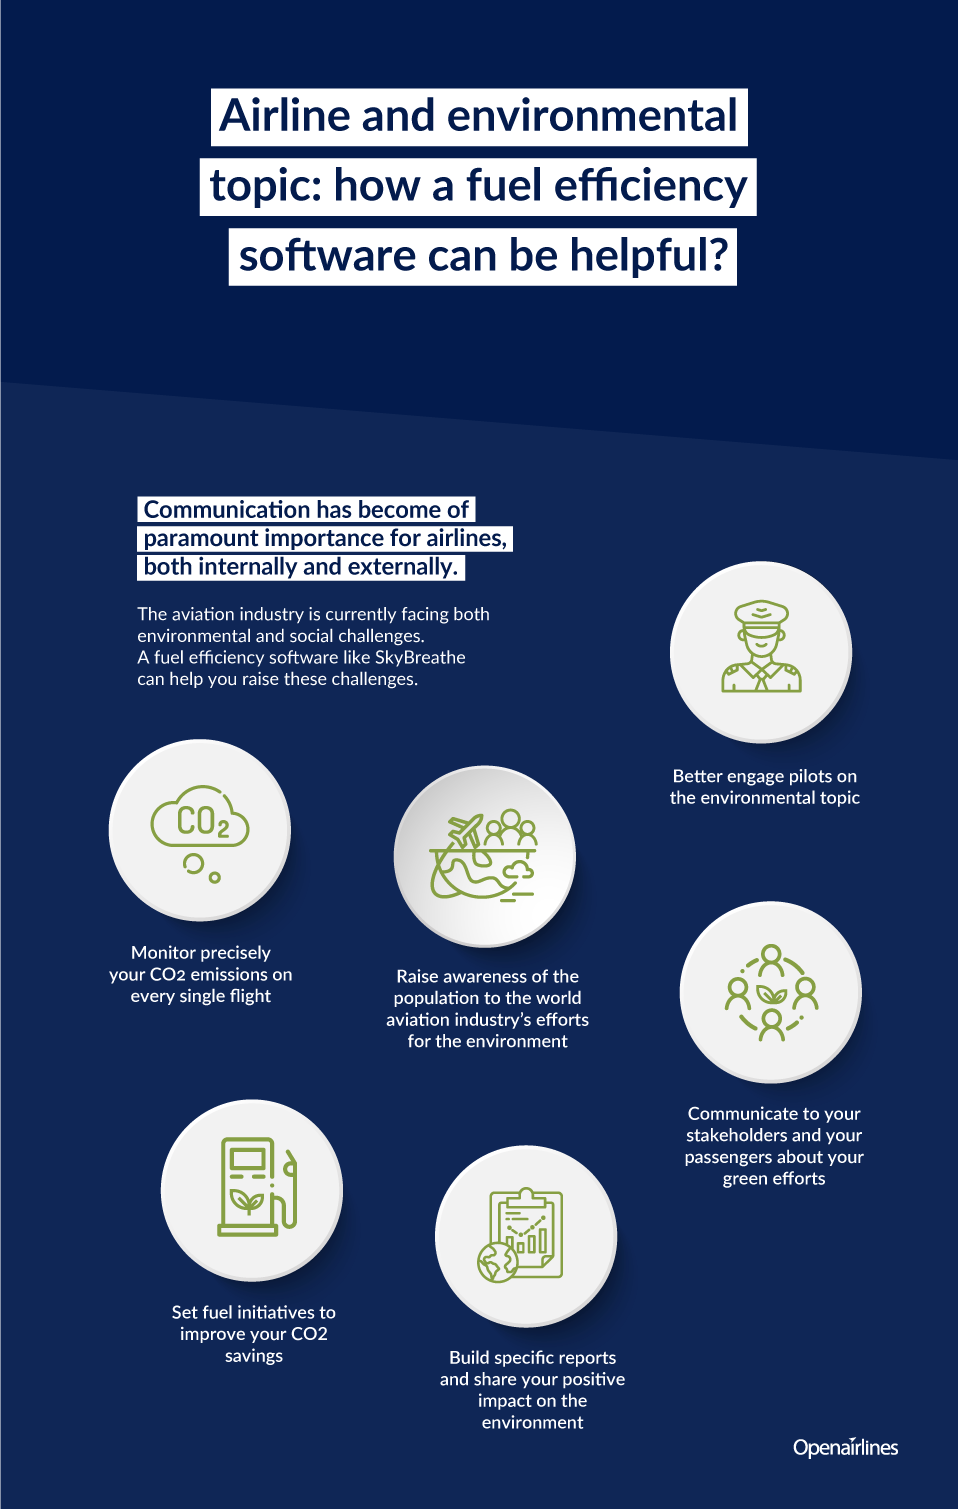 Infographie-Airlines-environmental-topic-fuel-efficiency-software-HD